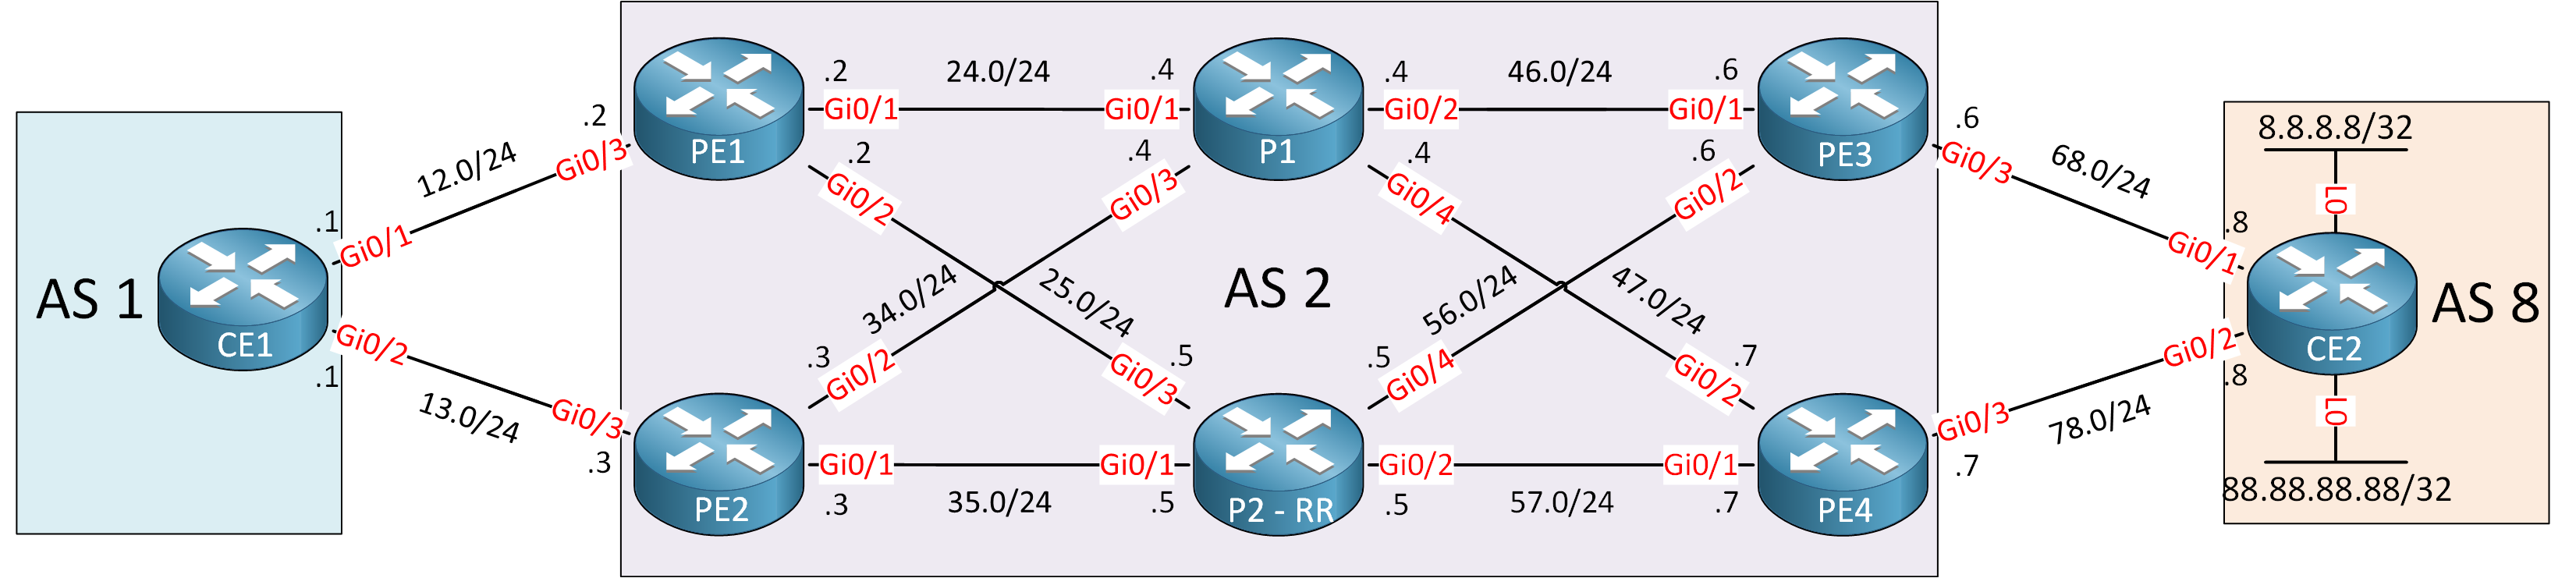 Bgp Pic Topology Ce Pe P Routers